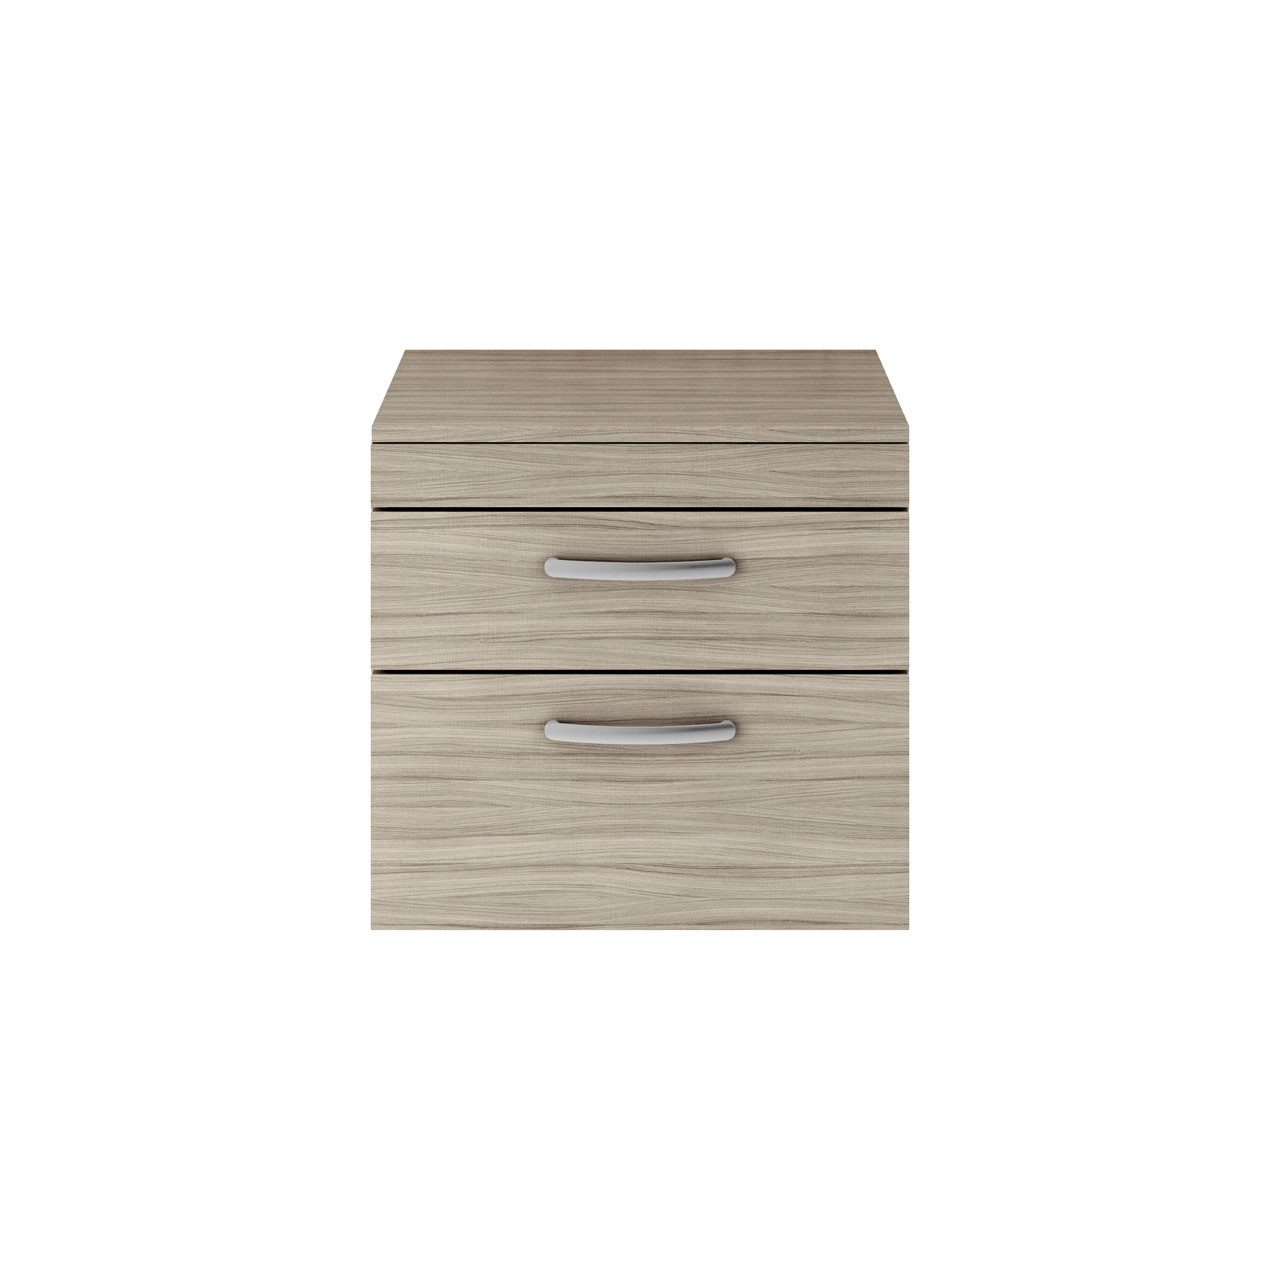 Premier Athena Driftwood 600mm Wall Hung 2 Drawer Vanity Unit with Worktop - ATH043W